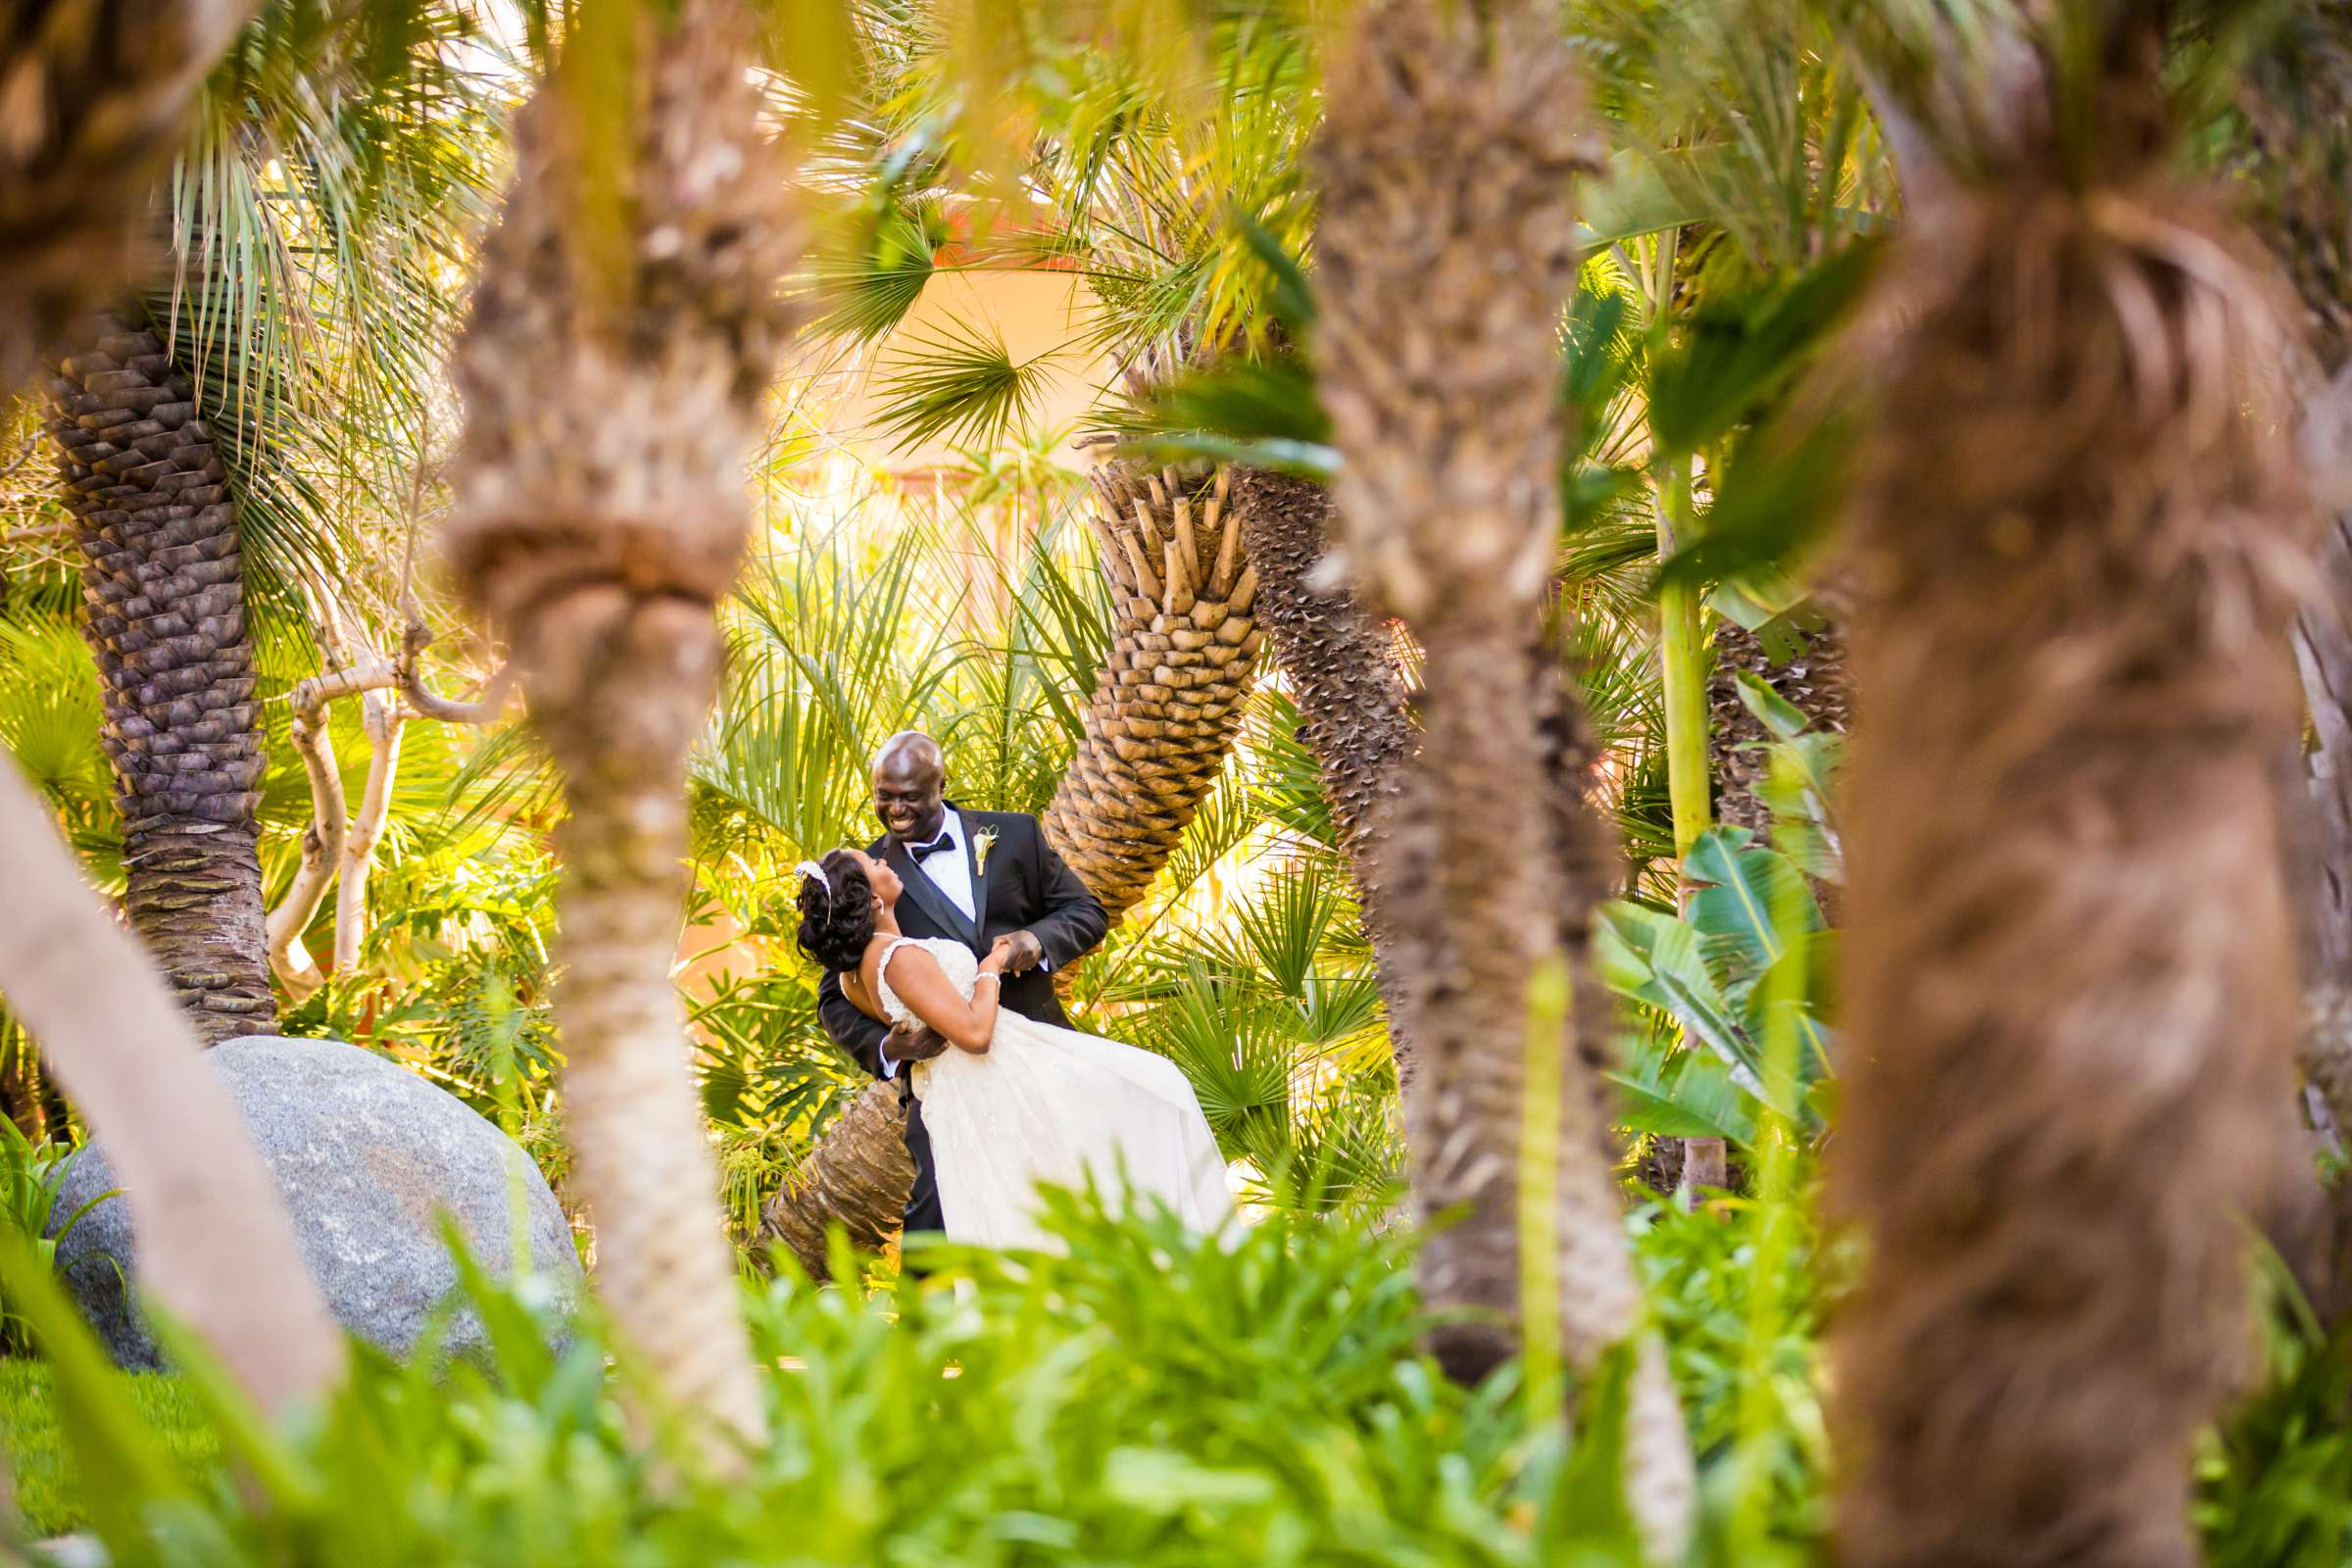 Catamaran Resort Wedding coordinated by Events Inspired SD, Vanessa and Akorli Wedding Photo #2 by True Photography